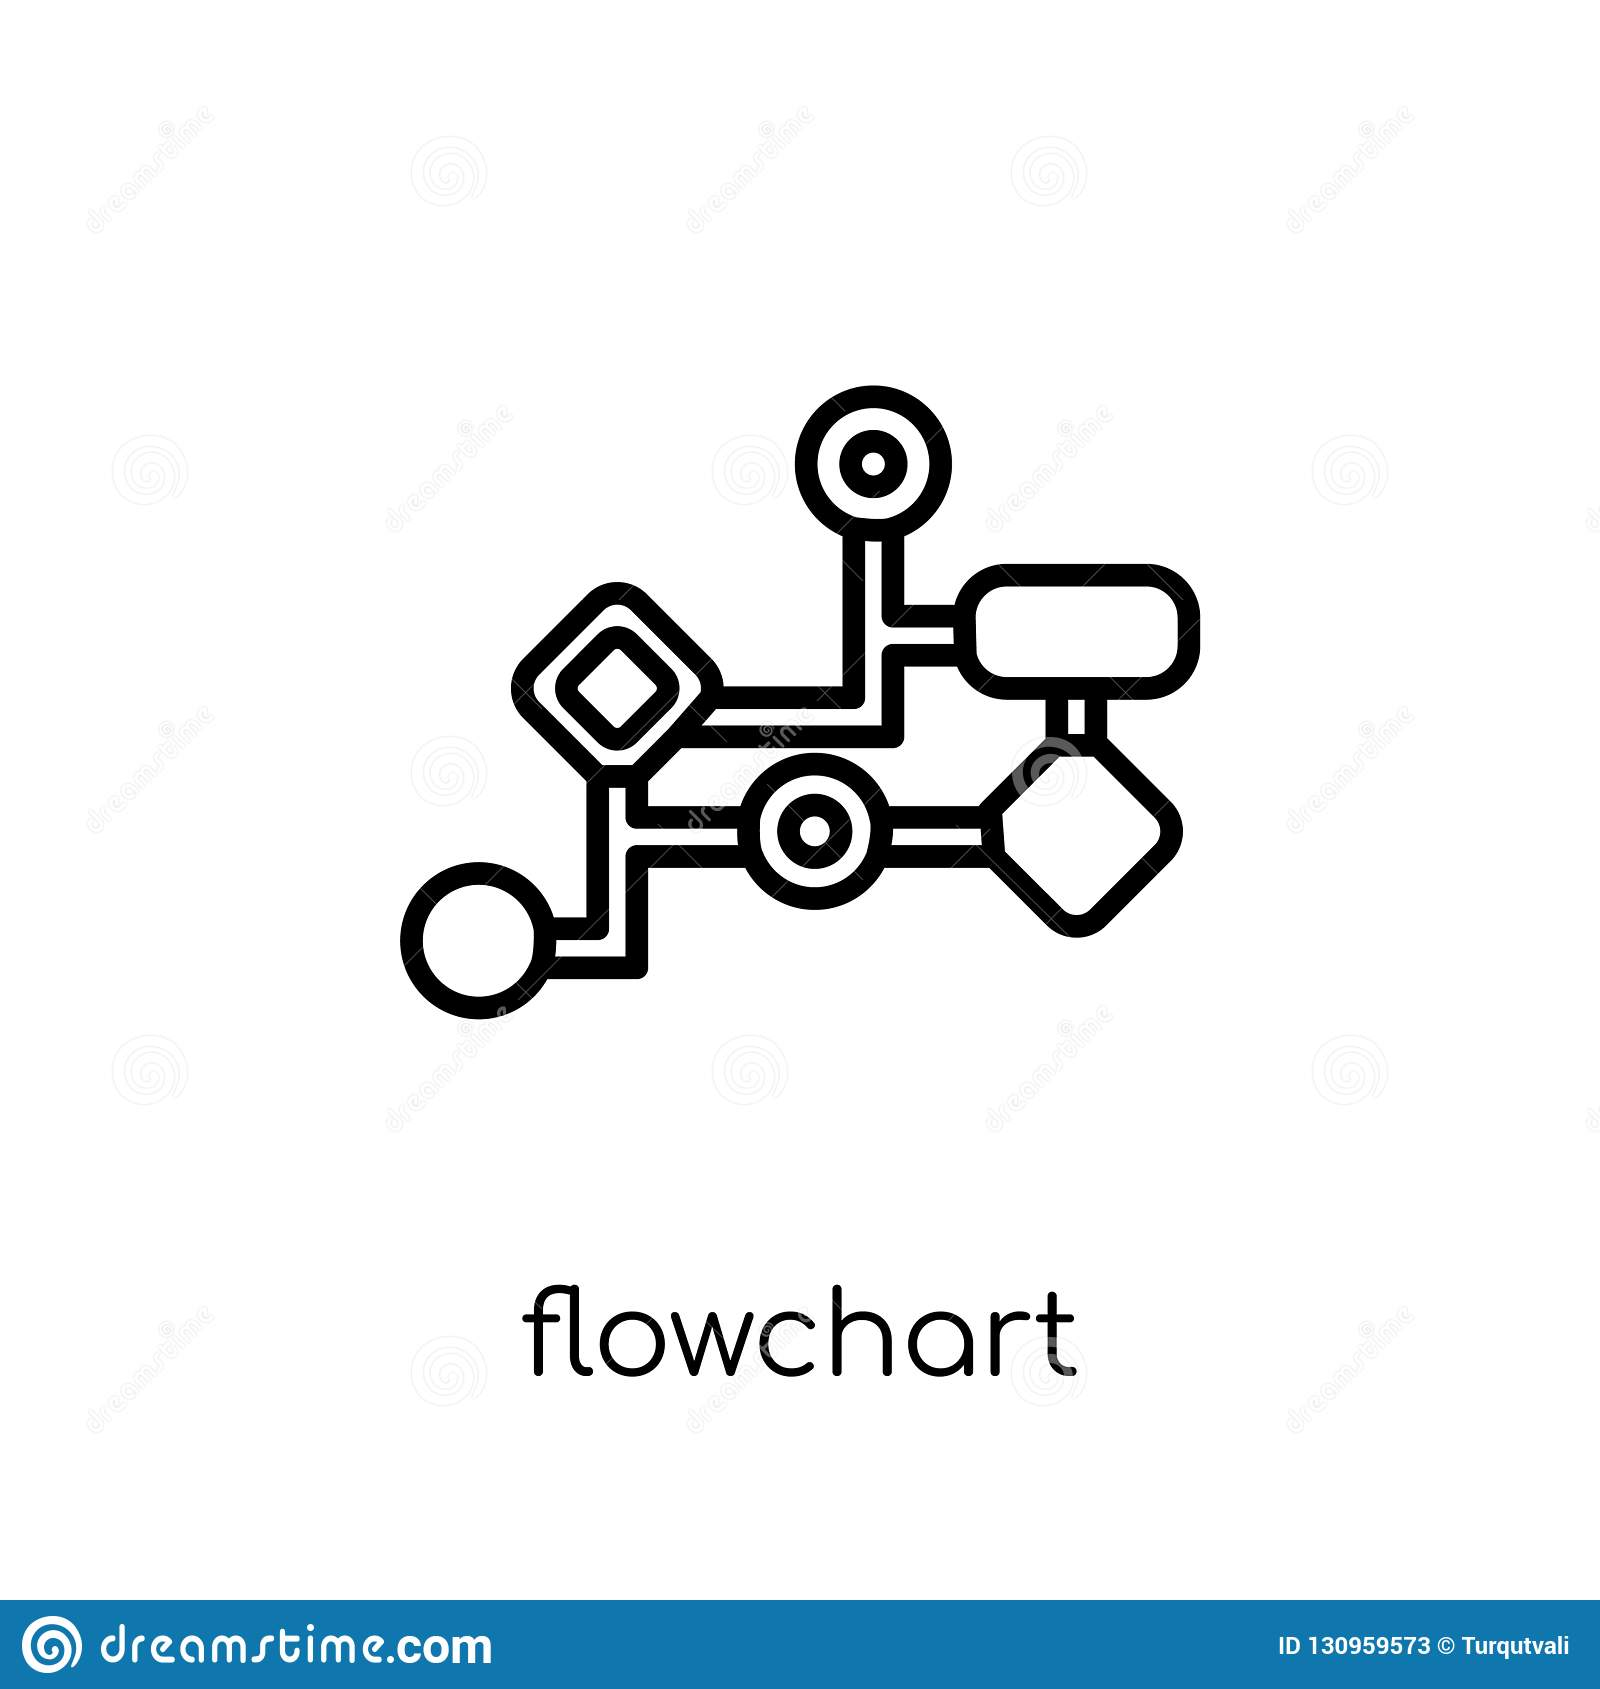 Flowchart icon from collection.